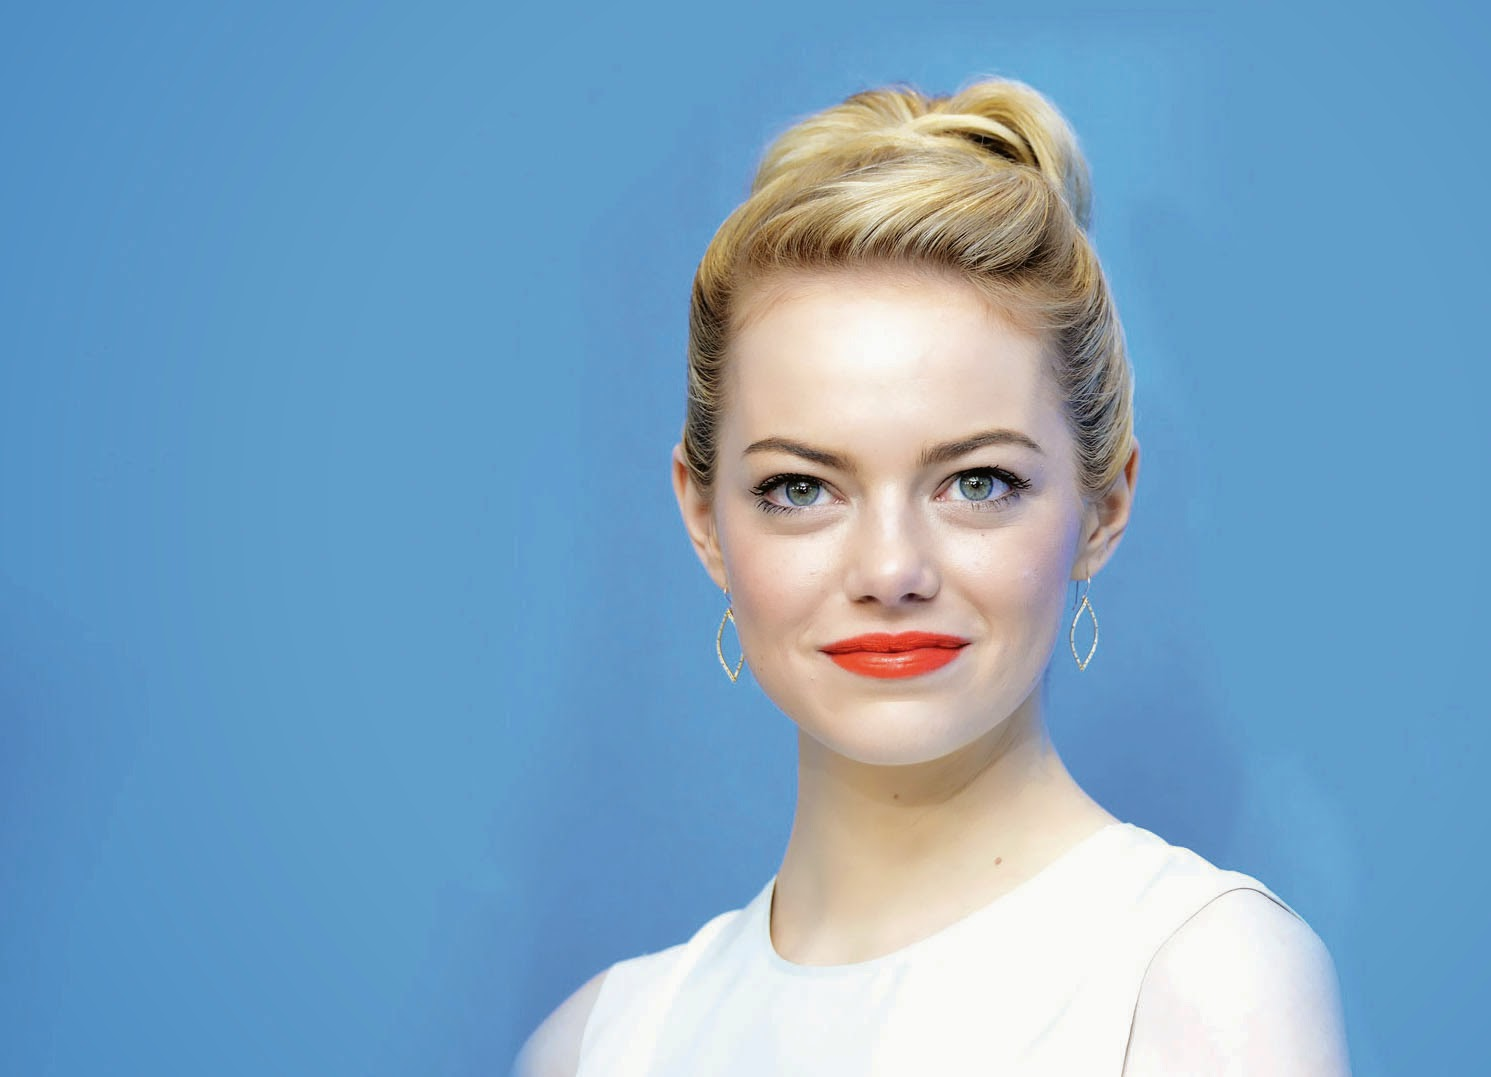 Emma Stone New Hd Wallpapers 2014 15 Hollywood Stars Hd Wallpapers